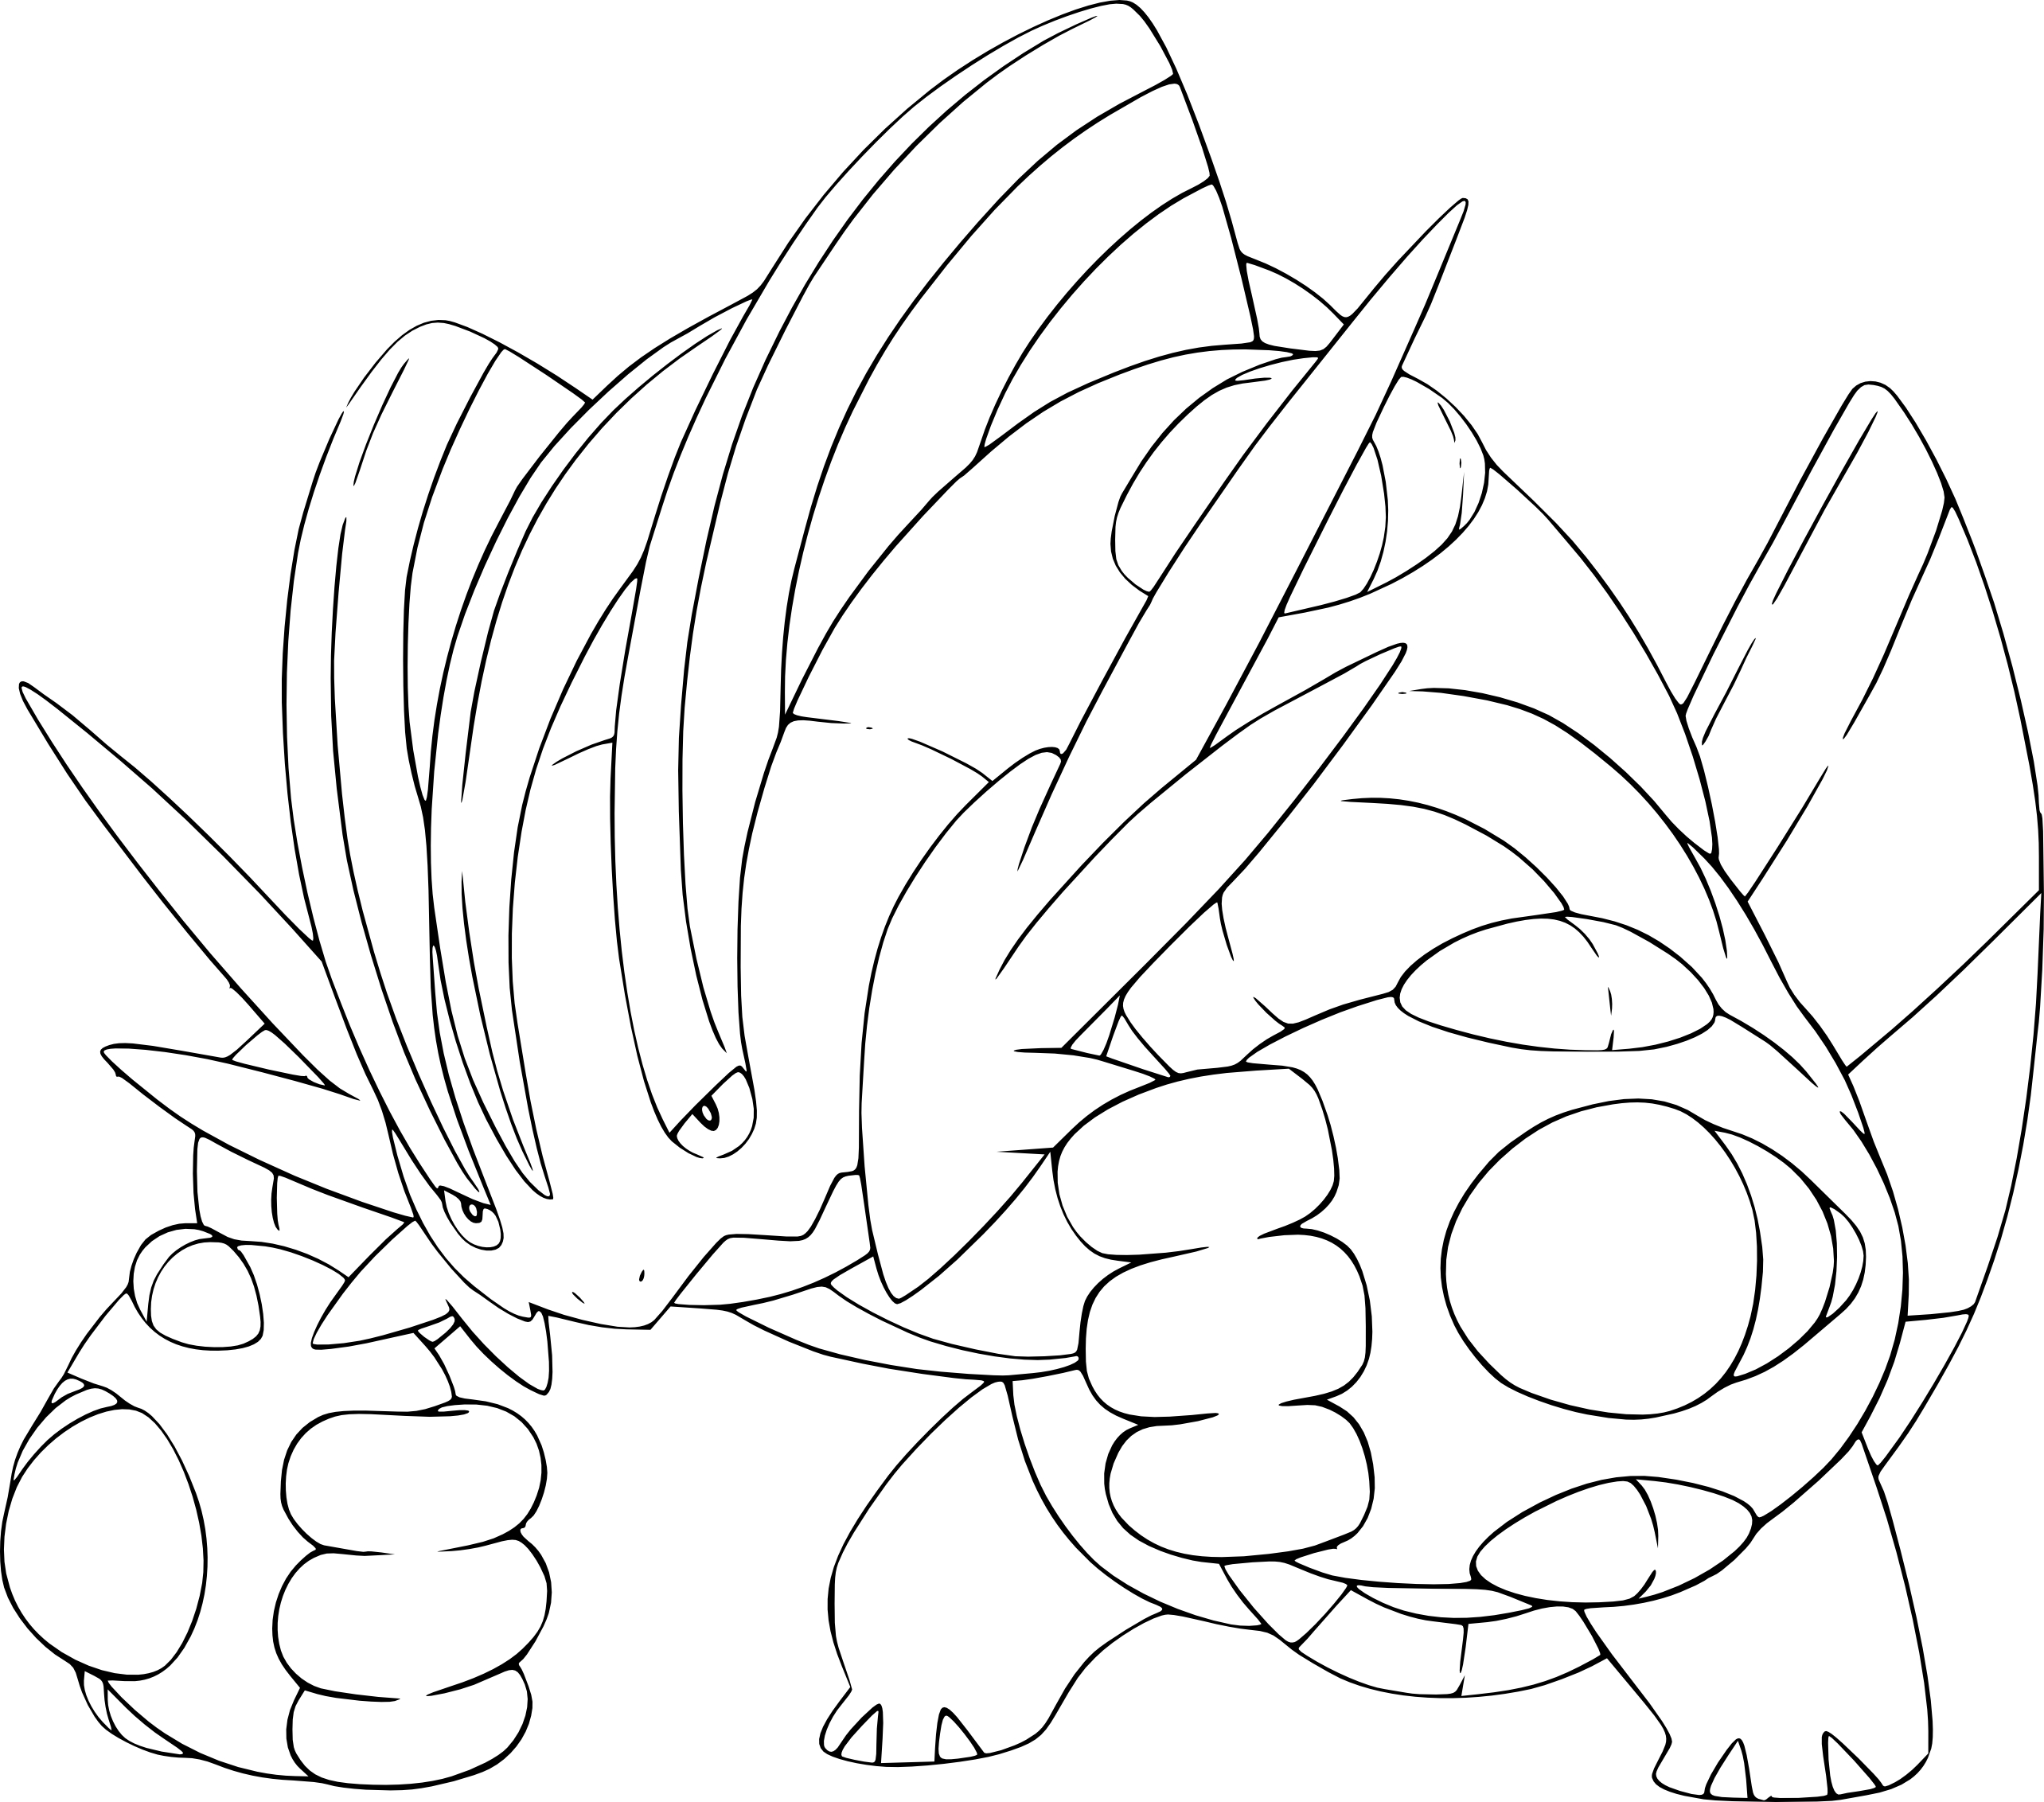 Coloriage m ga laggron pokemon imprimer for Pokemon coloring pages mega ex